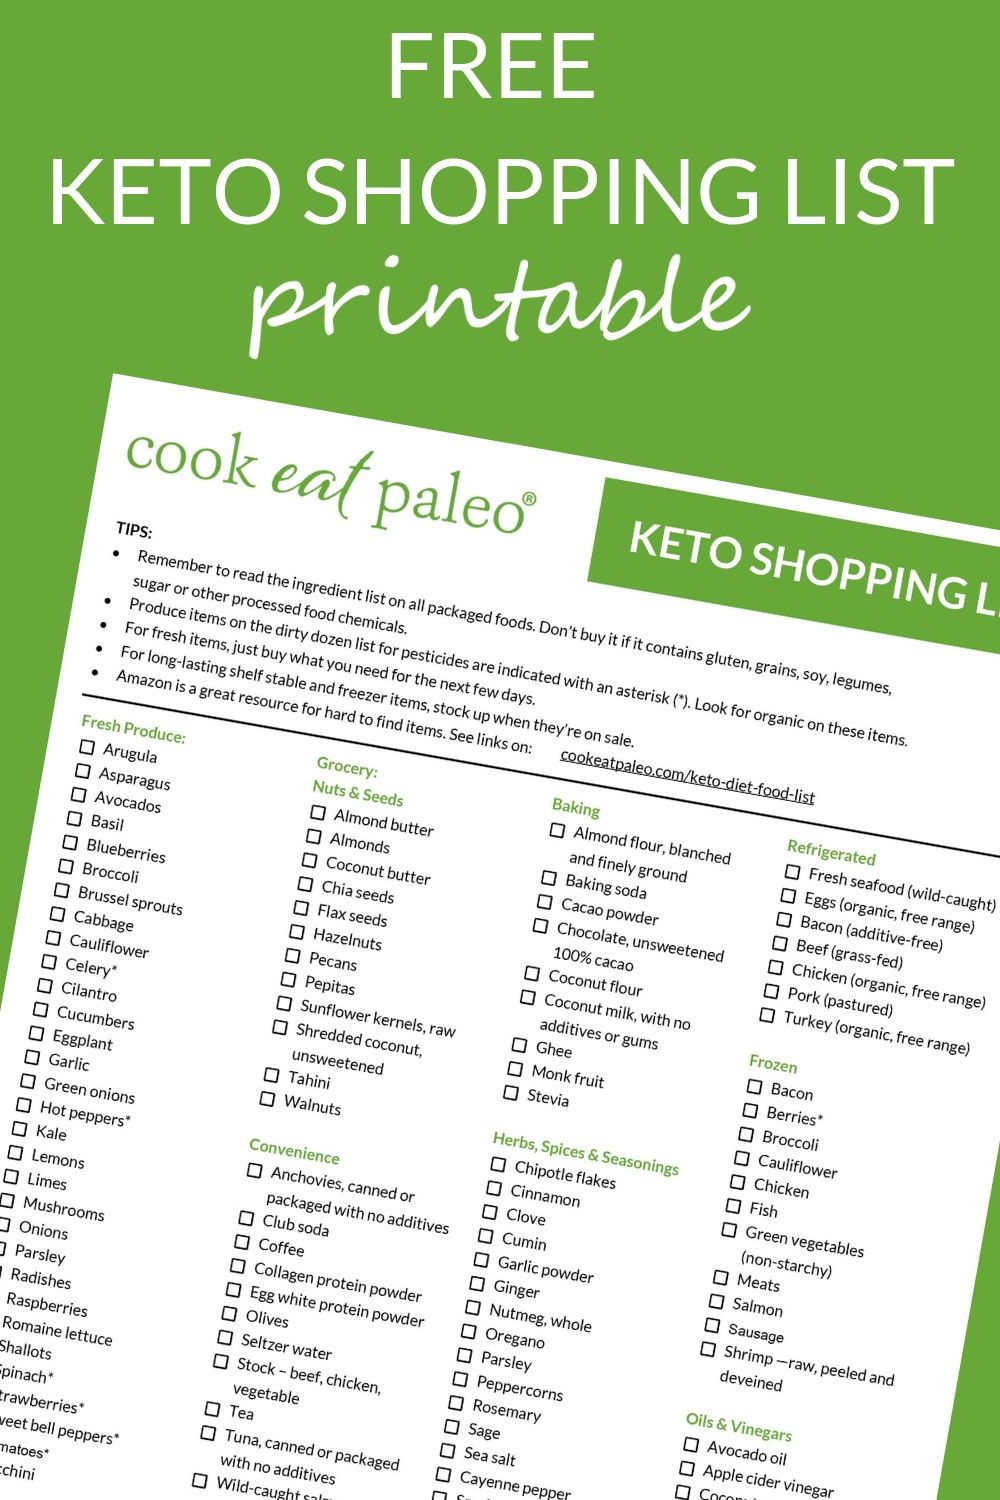 Sign up to get your FREE printable keto shopping list of